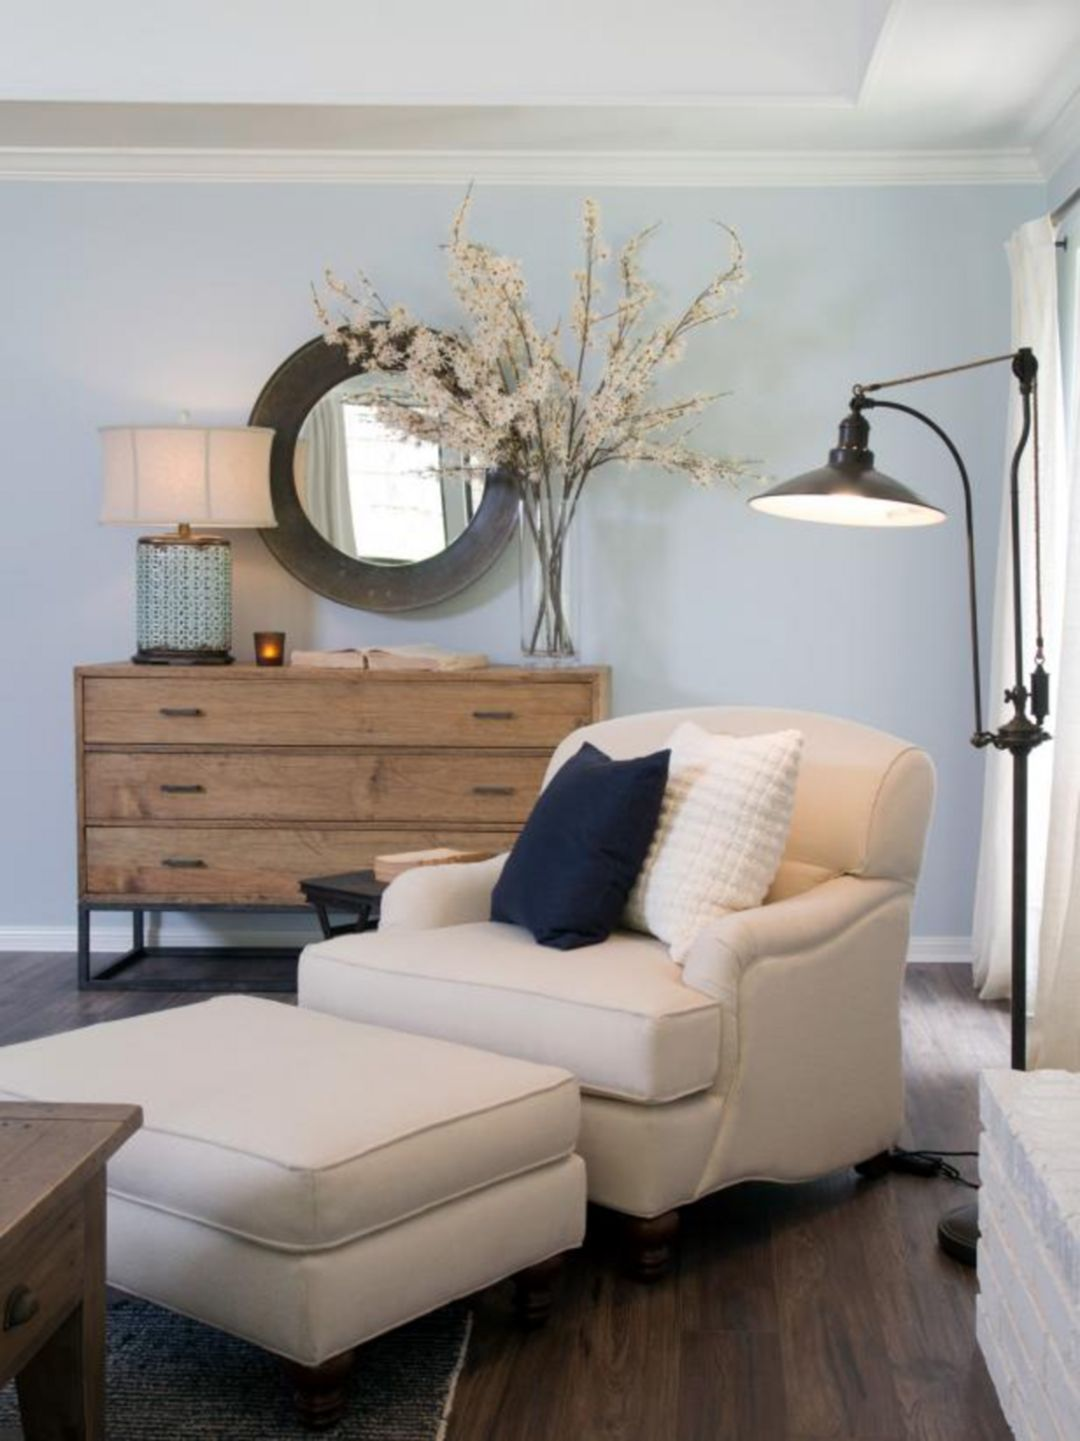 How To Make Your Bedroom Awesome 70 Cool Navy And White Bedroom Design Ideas To Make Your Bedroom